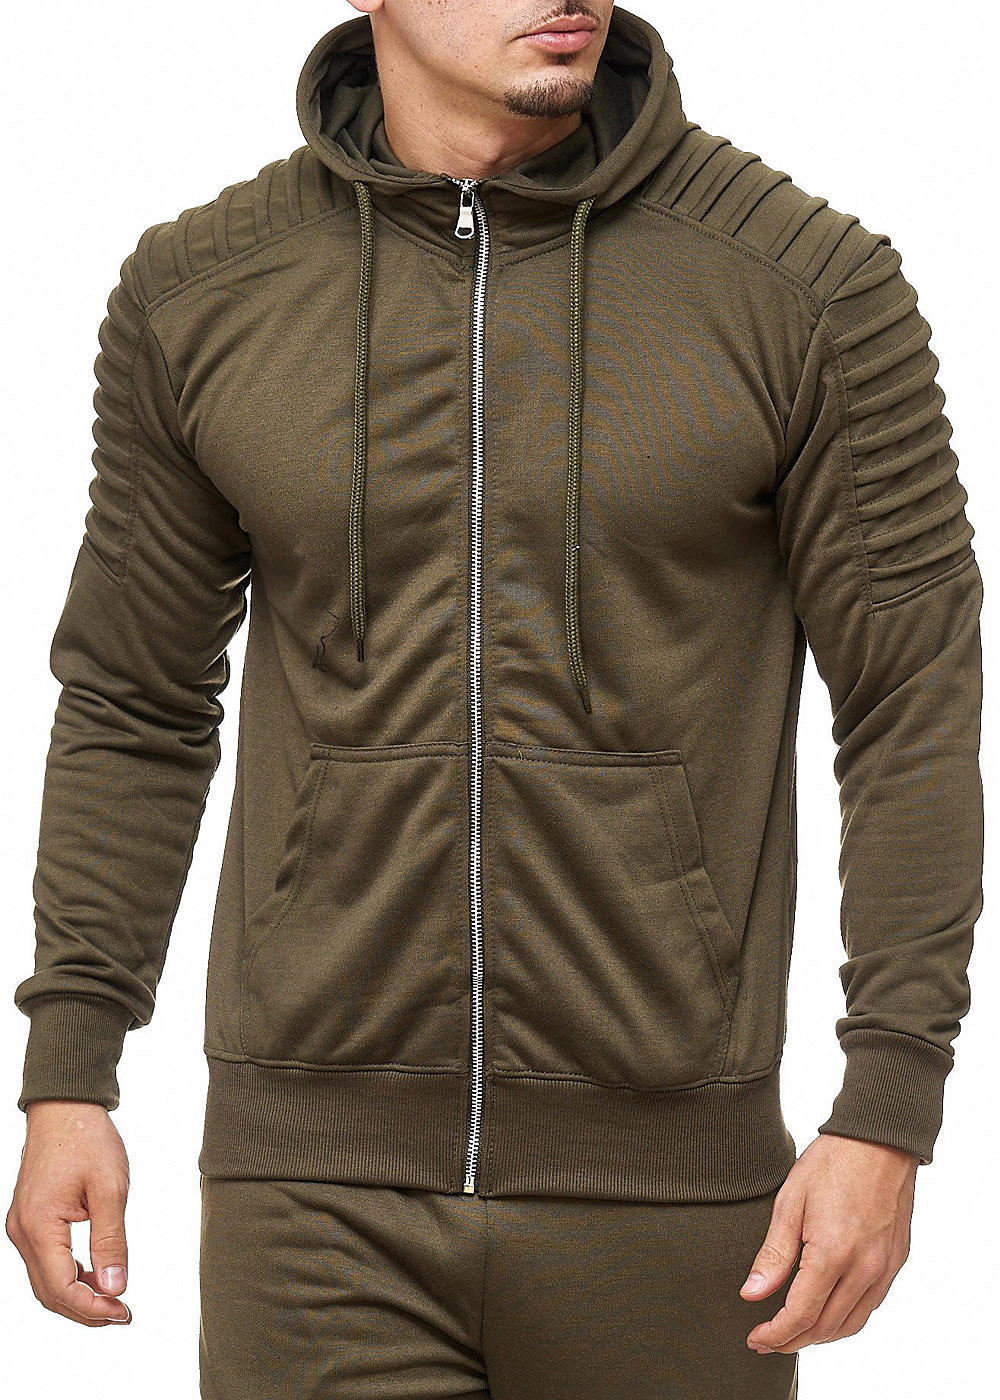 seventyseven lifestyle herren zip hoodie 2 taschen khaki 77onlineshop. Black Bedroom Furniture Sets. Home Design Ideas